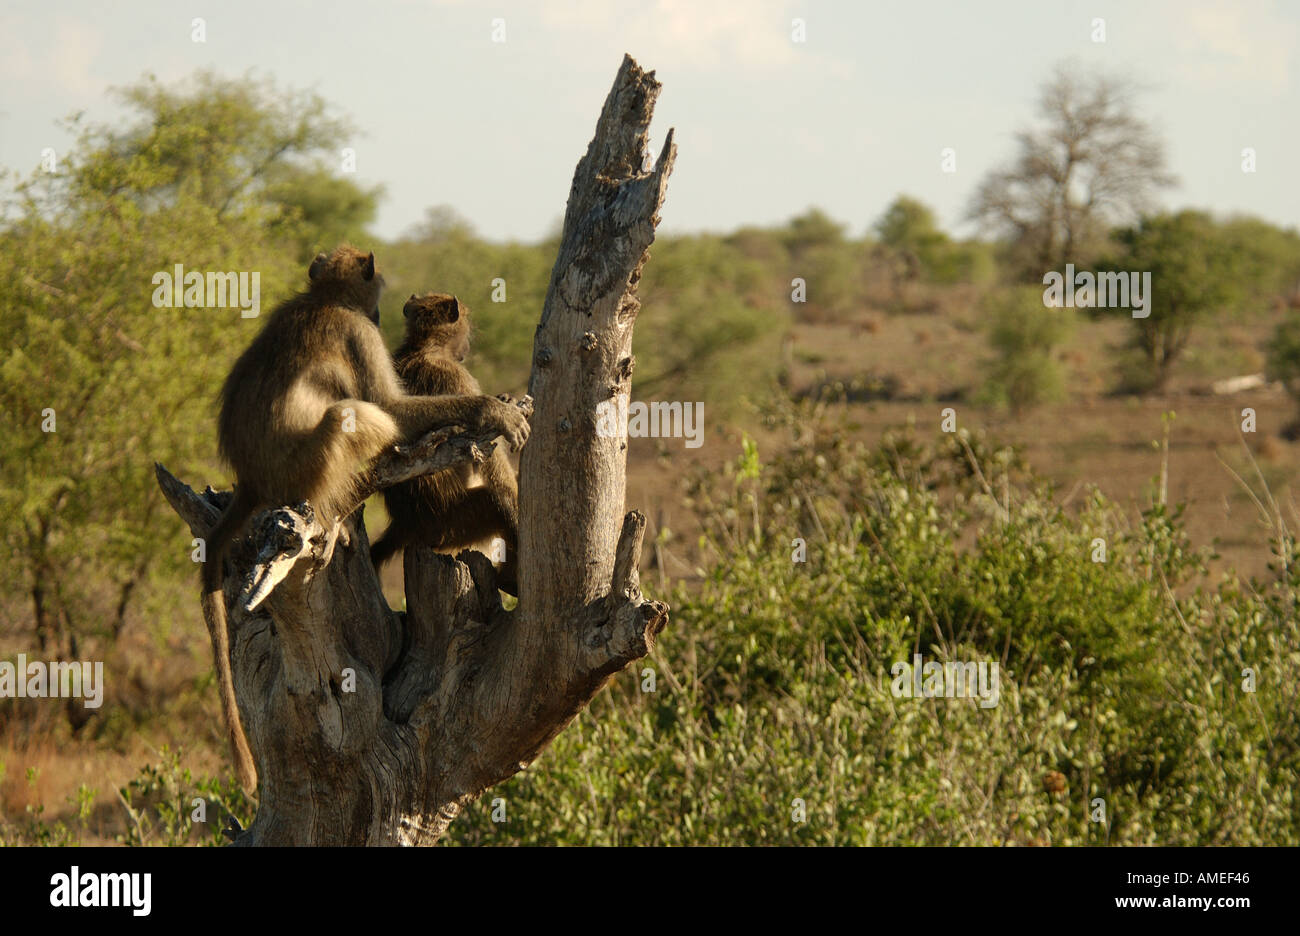 Baboons Africa - Stock Image